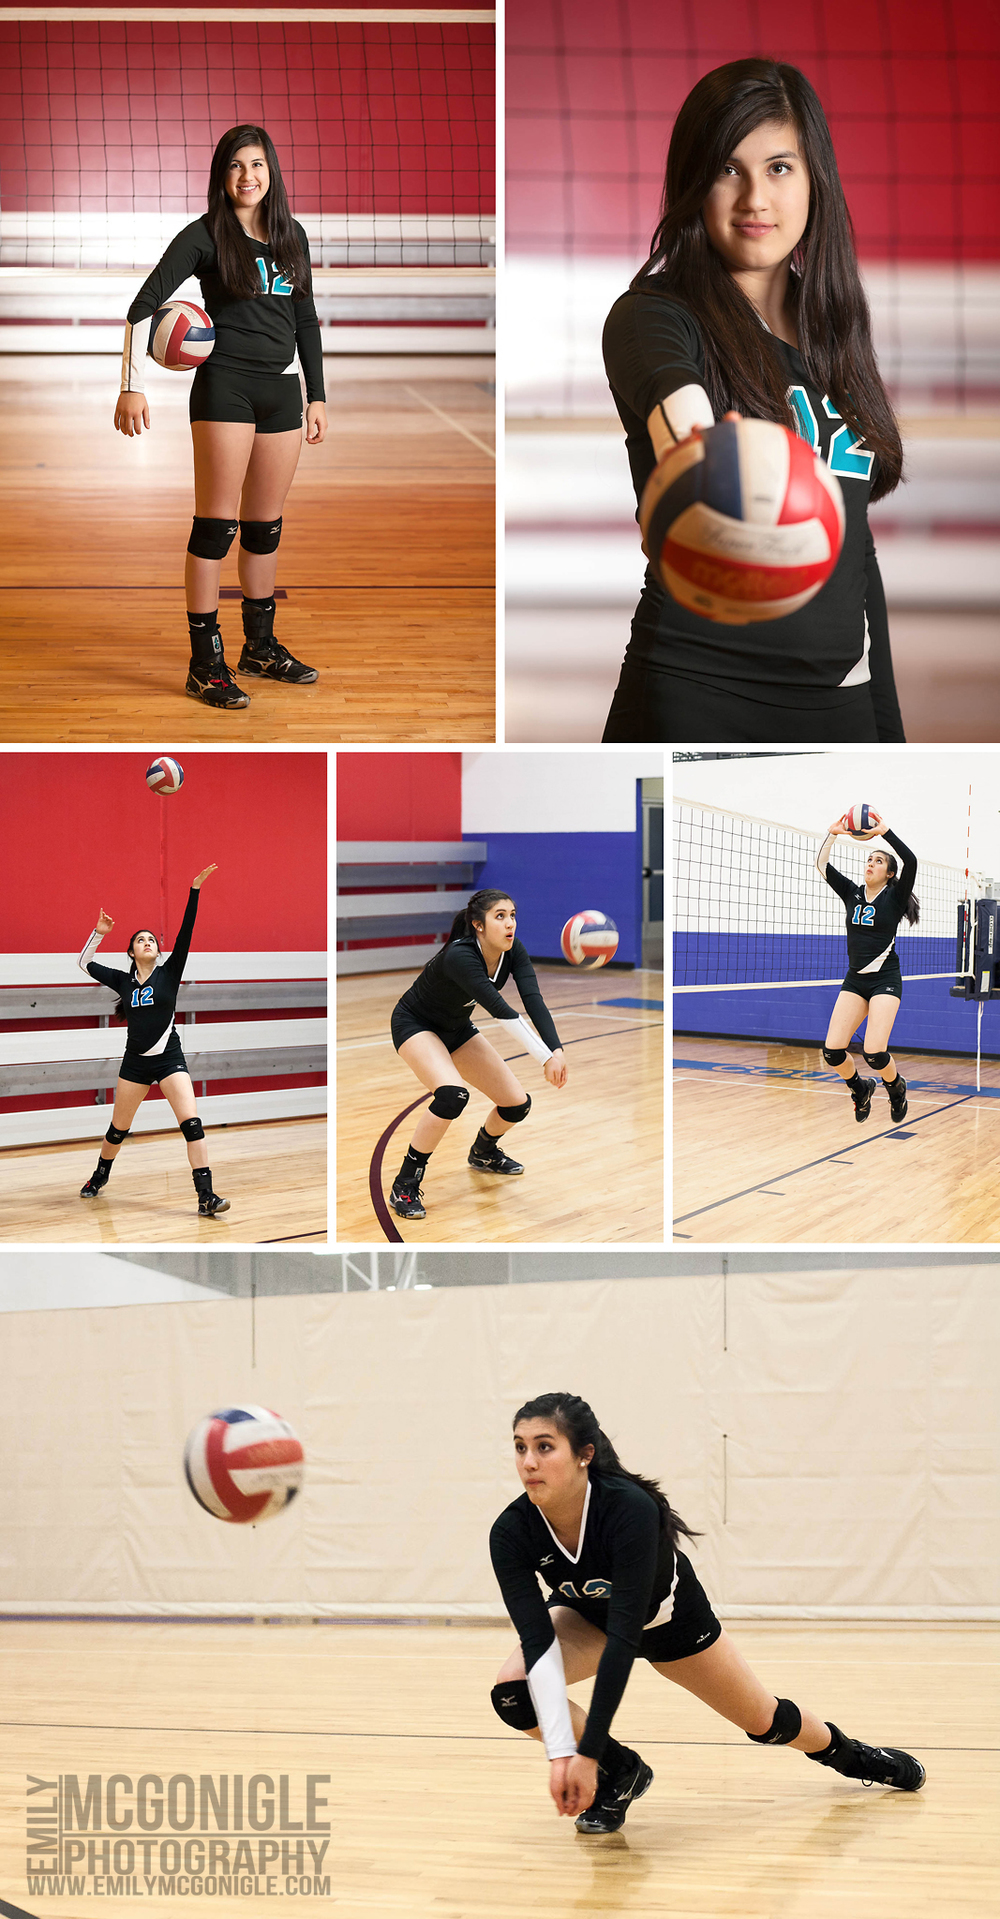 Action volleyball player girl